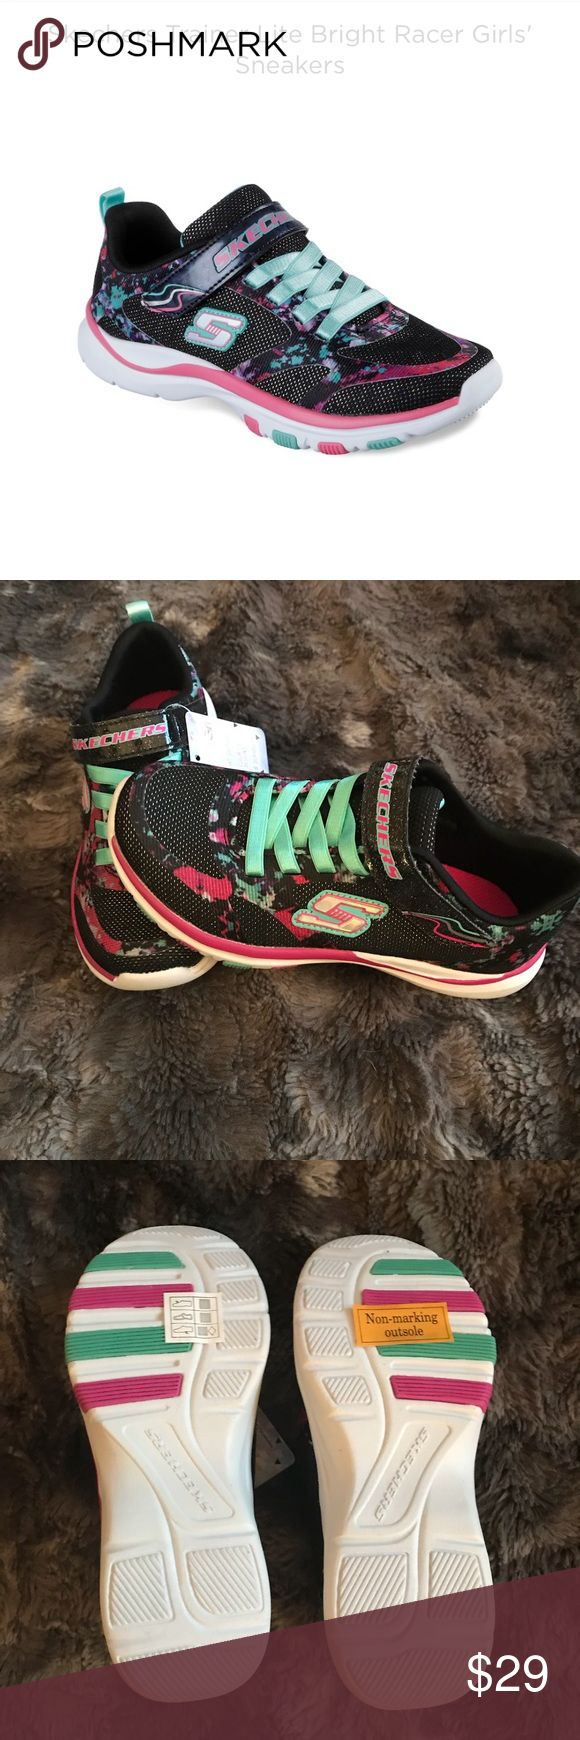 Girls size 13 Skechers sneakers black pink floral Girls size 13 brand new Skechers. They are black, blue and pink with floral design. They are the Trainer Lite Bright Racer Girls Sneakers. Super cute shoes! Skechers Shoes Sneakers